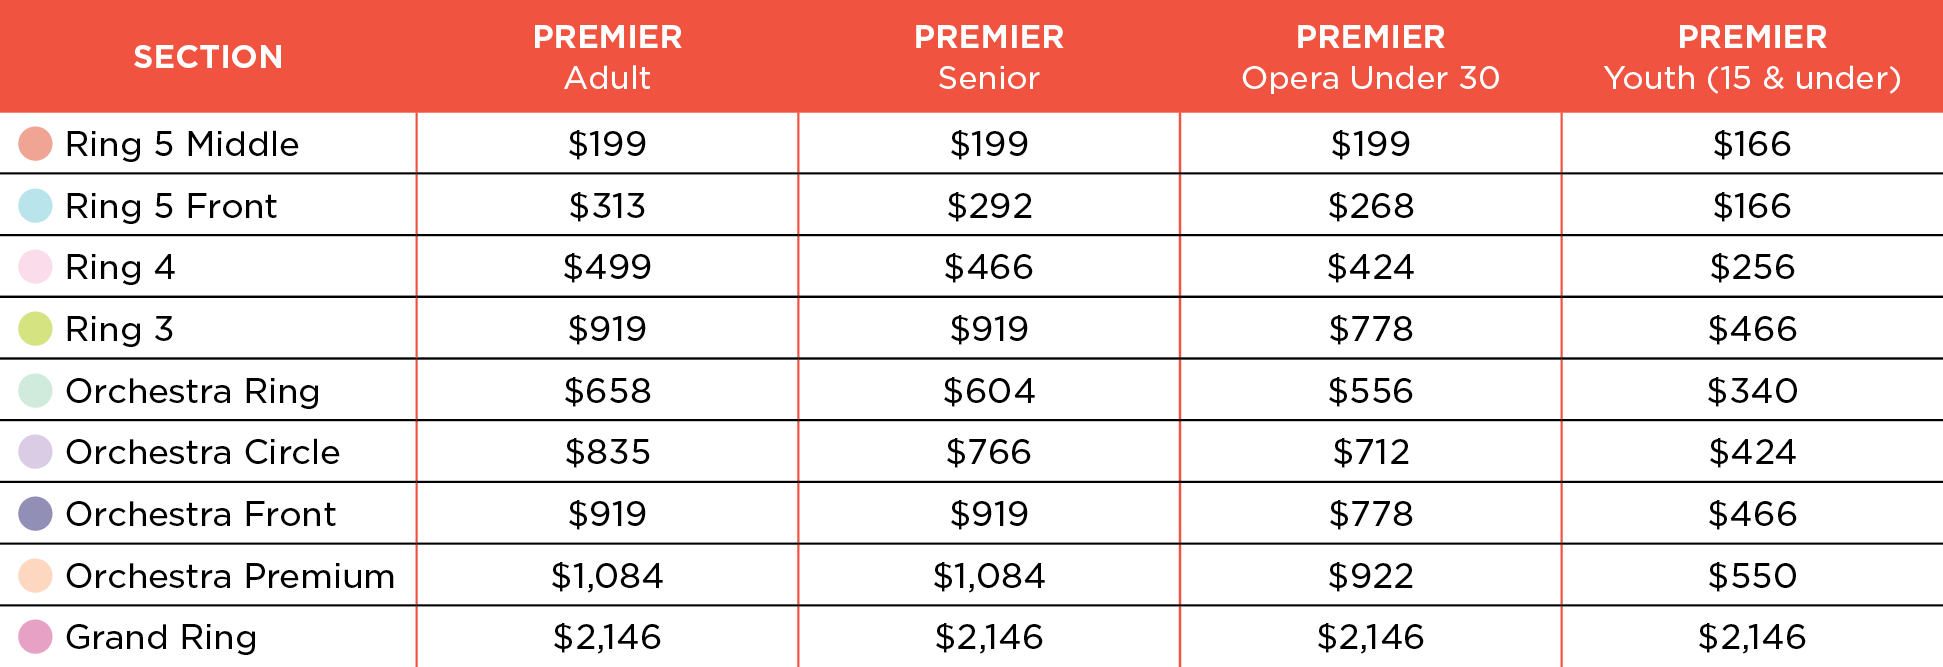 premier pricing